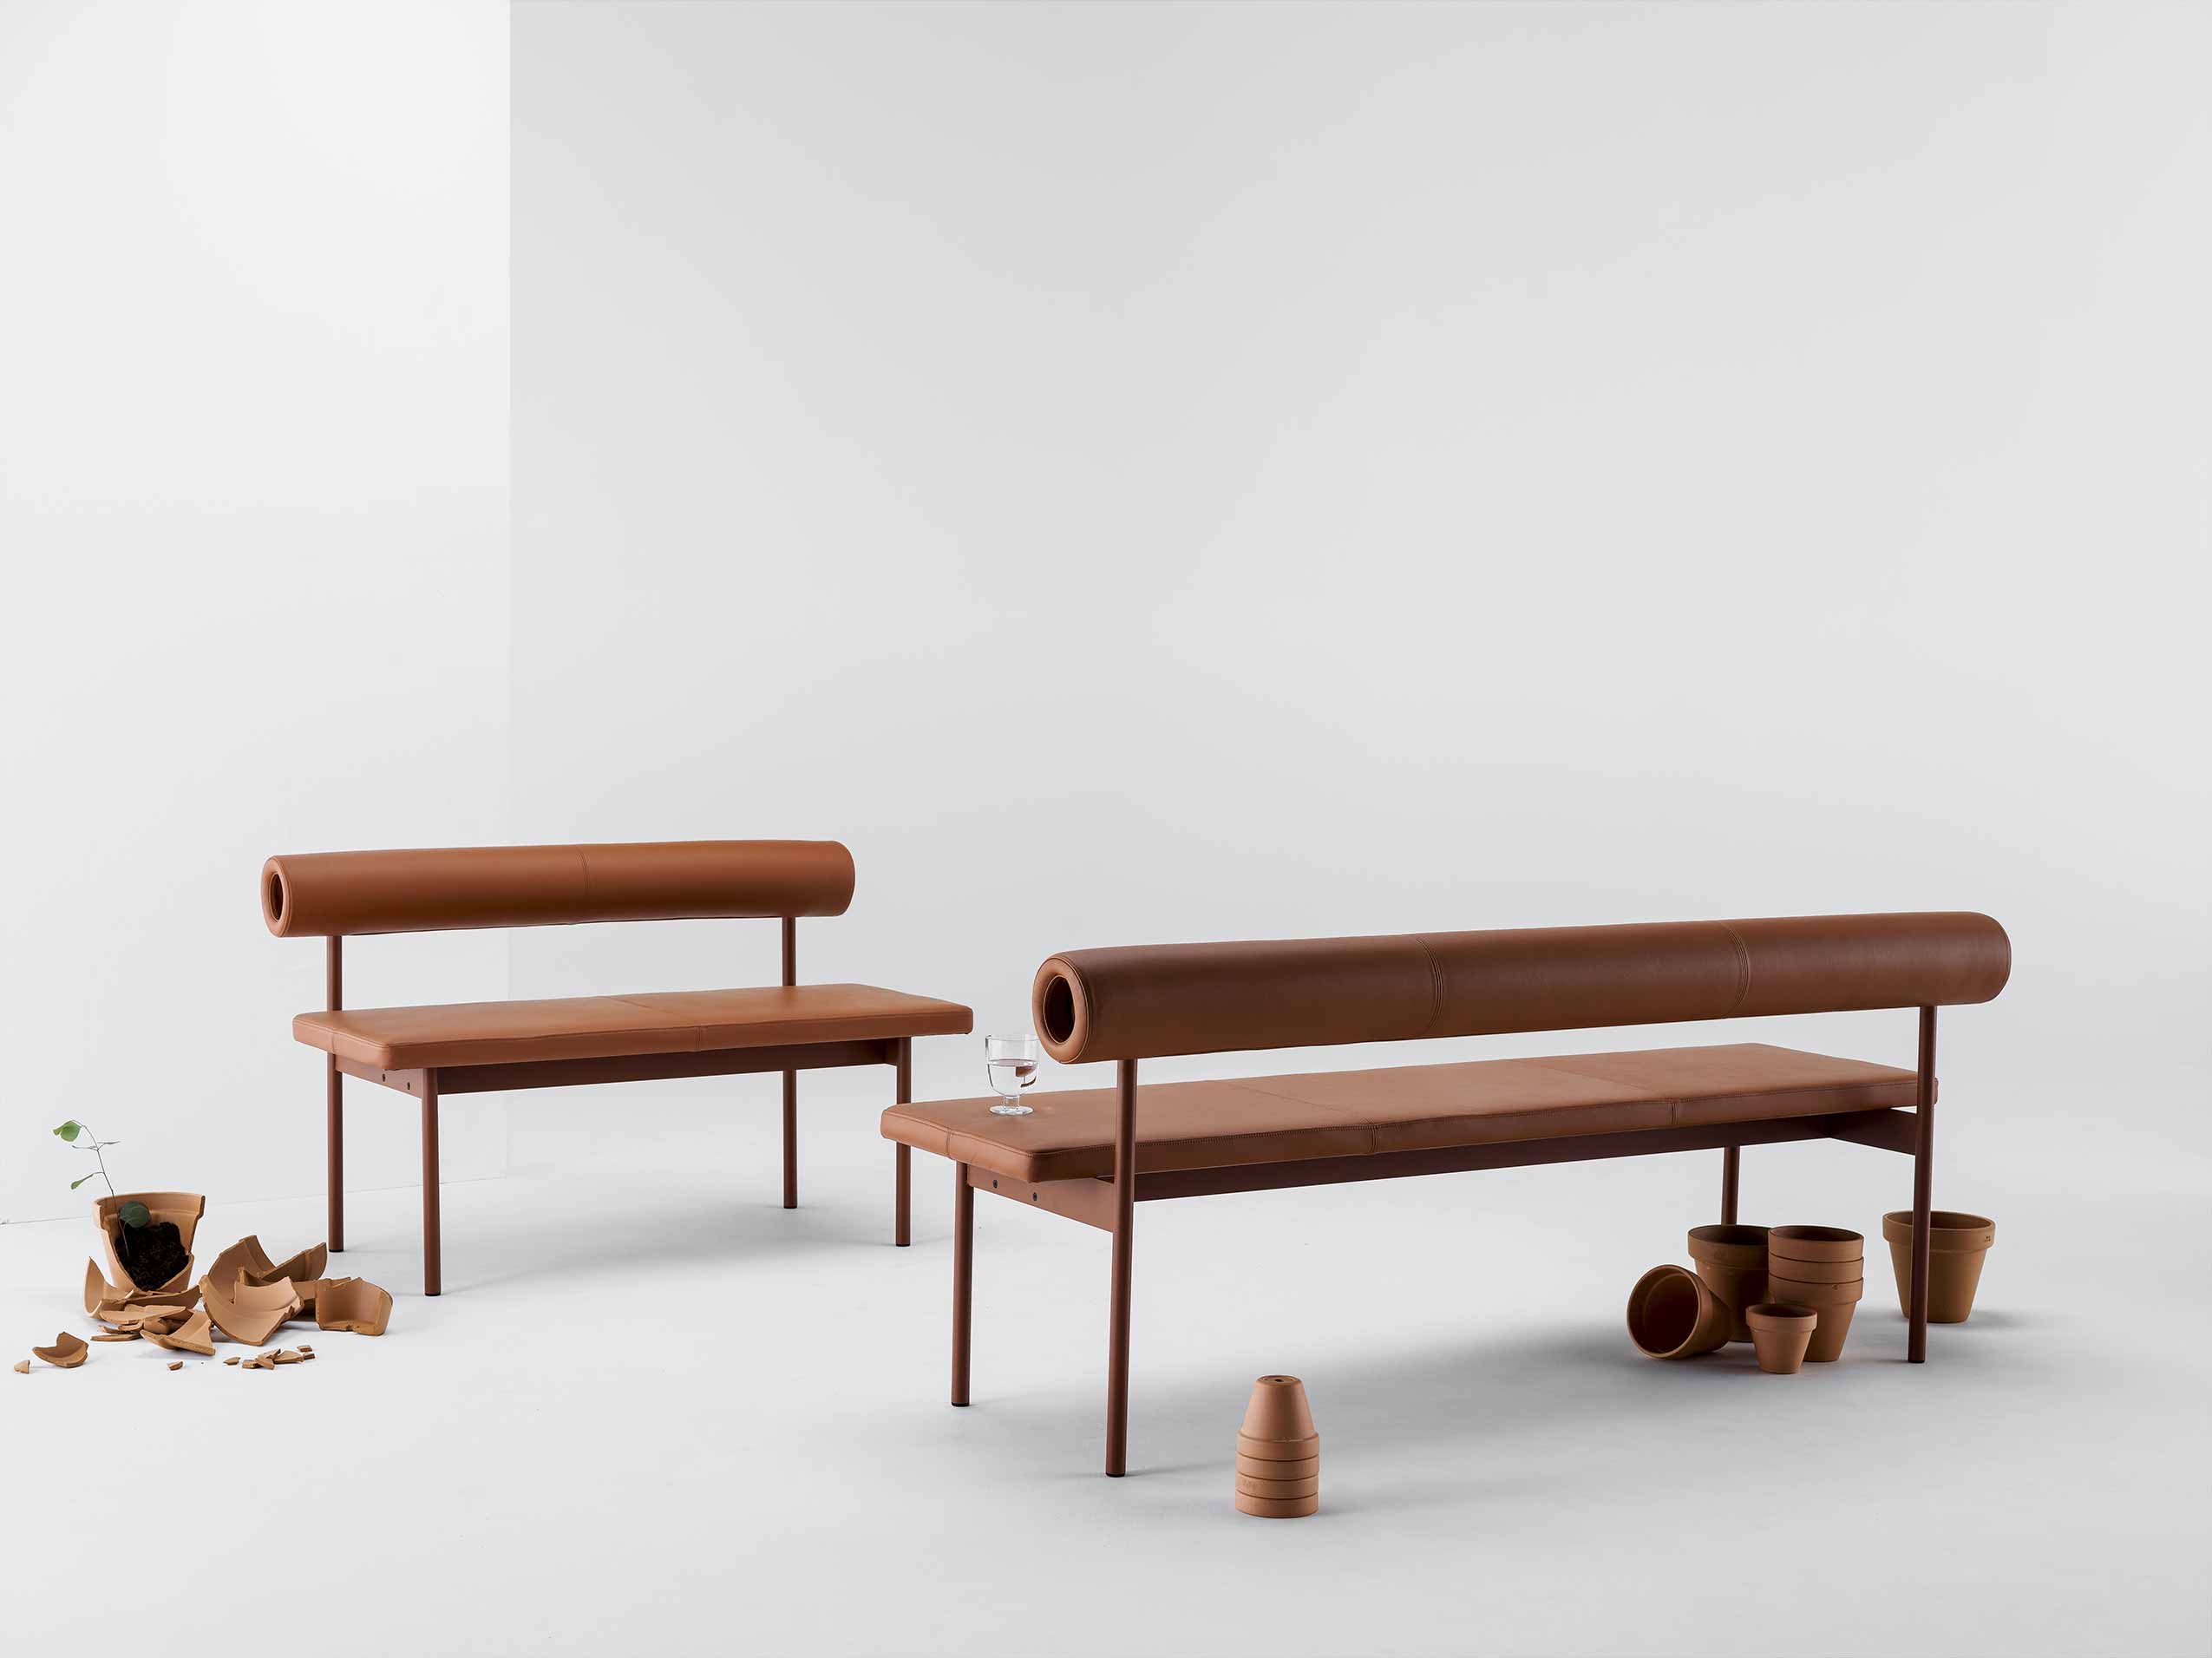 Font-Sofa-System-Matti-Klenell-Offecct-Photo-Bjorn-Ceder-03_resize